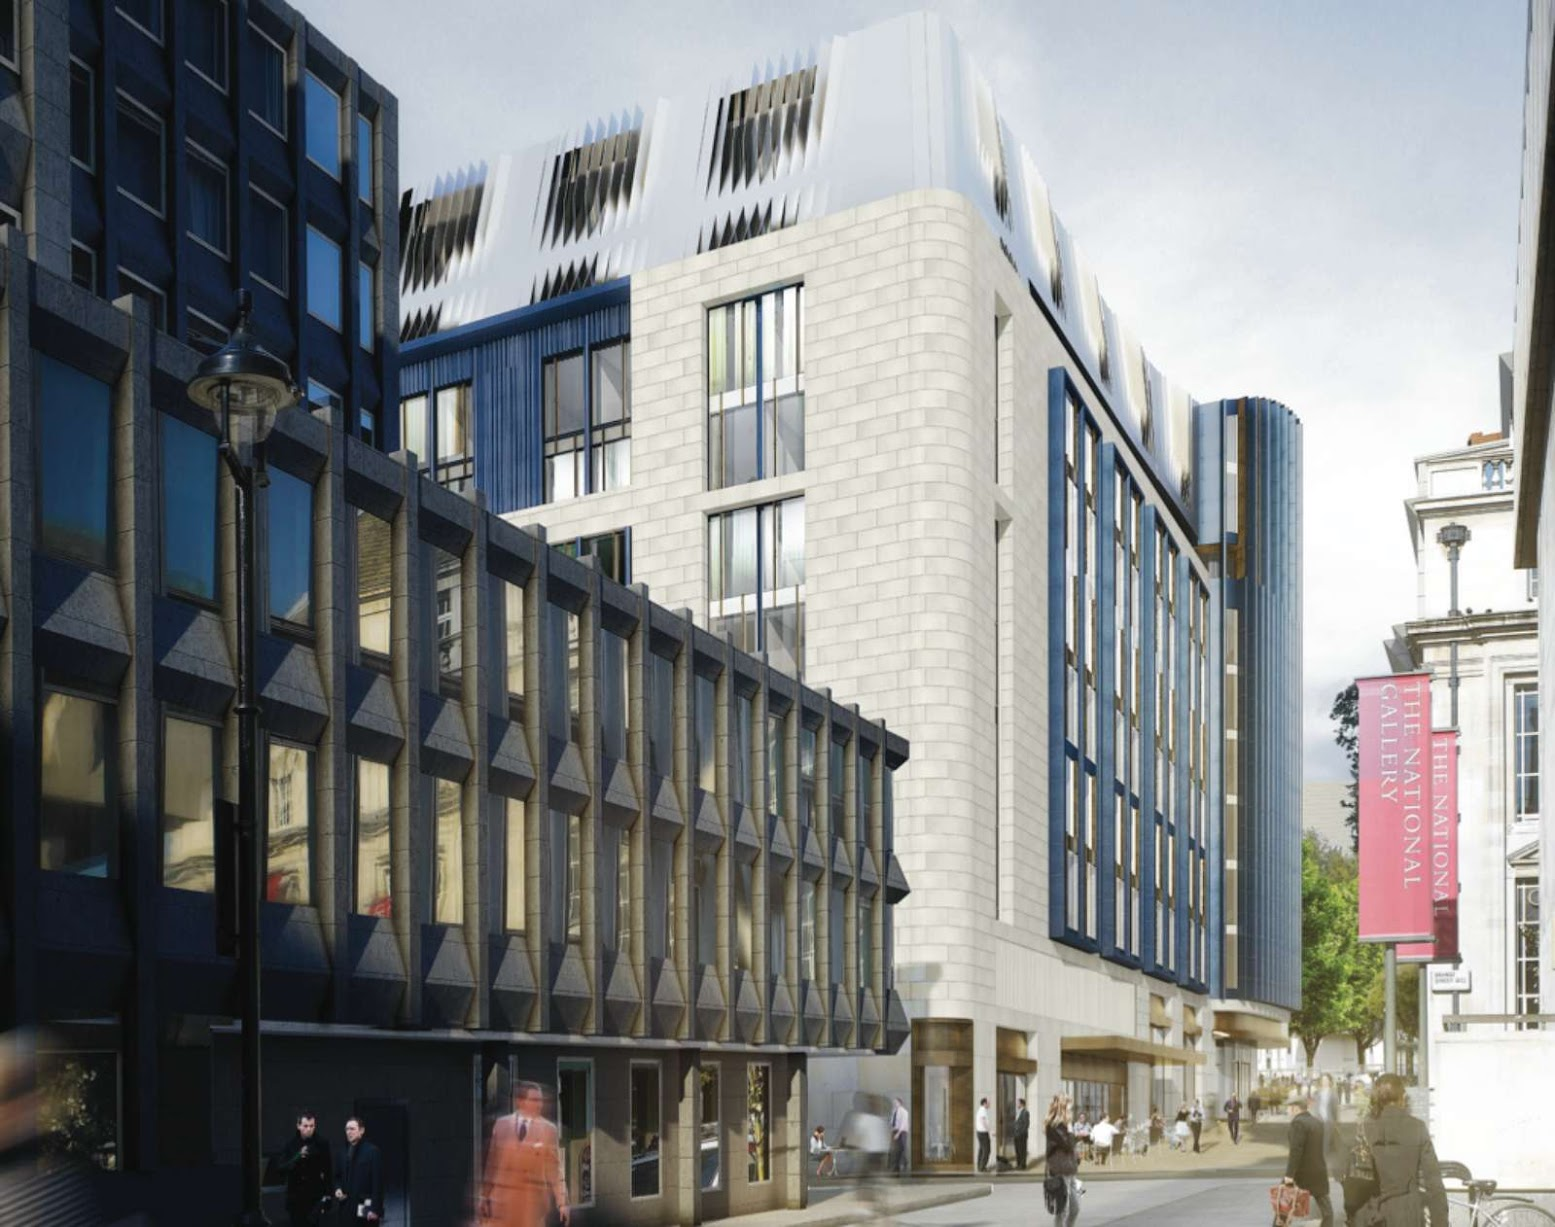 04-Hotel-plans-in-London's-Leicester-Square-by-Woods-Bagot